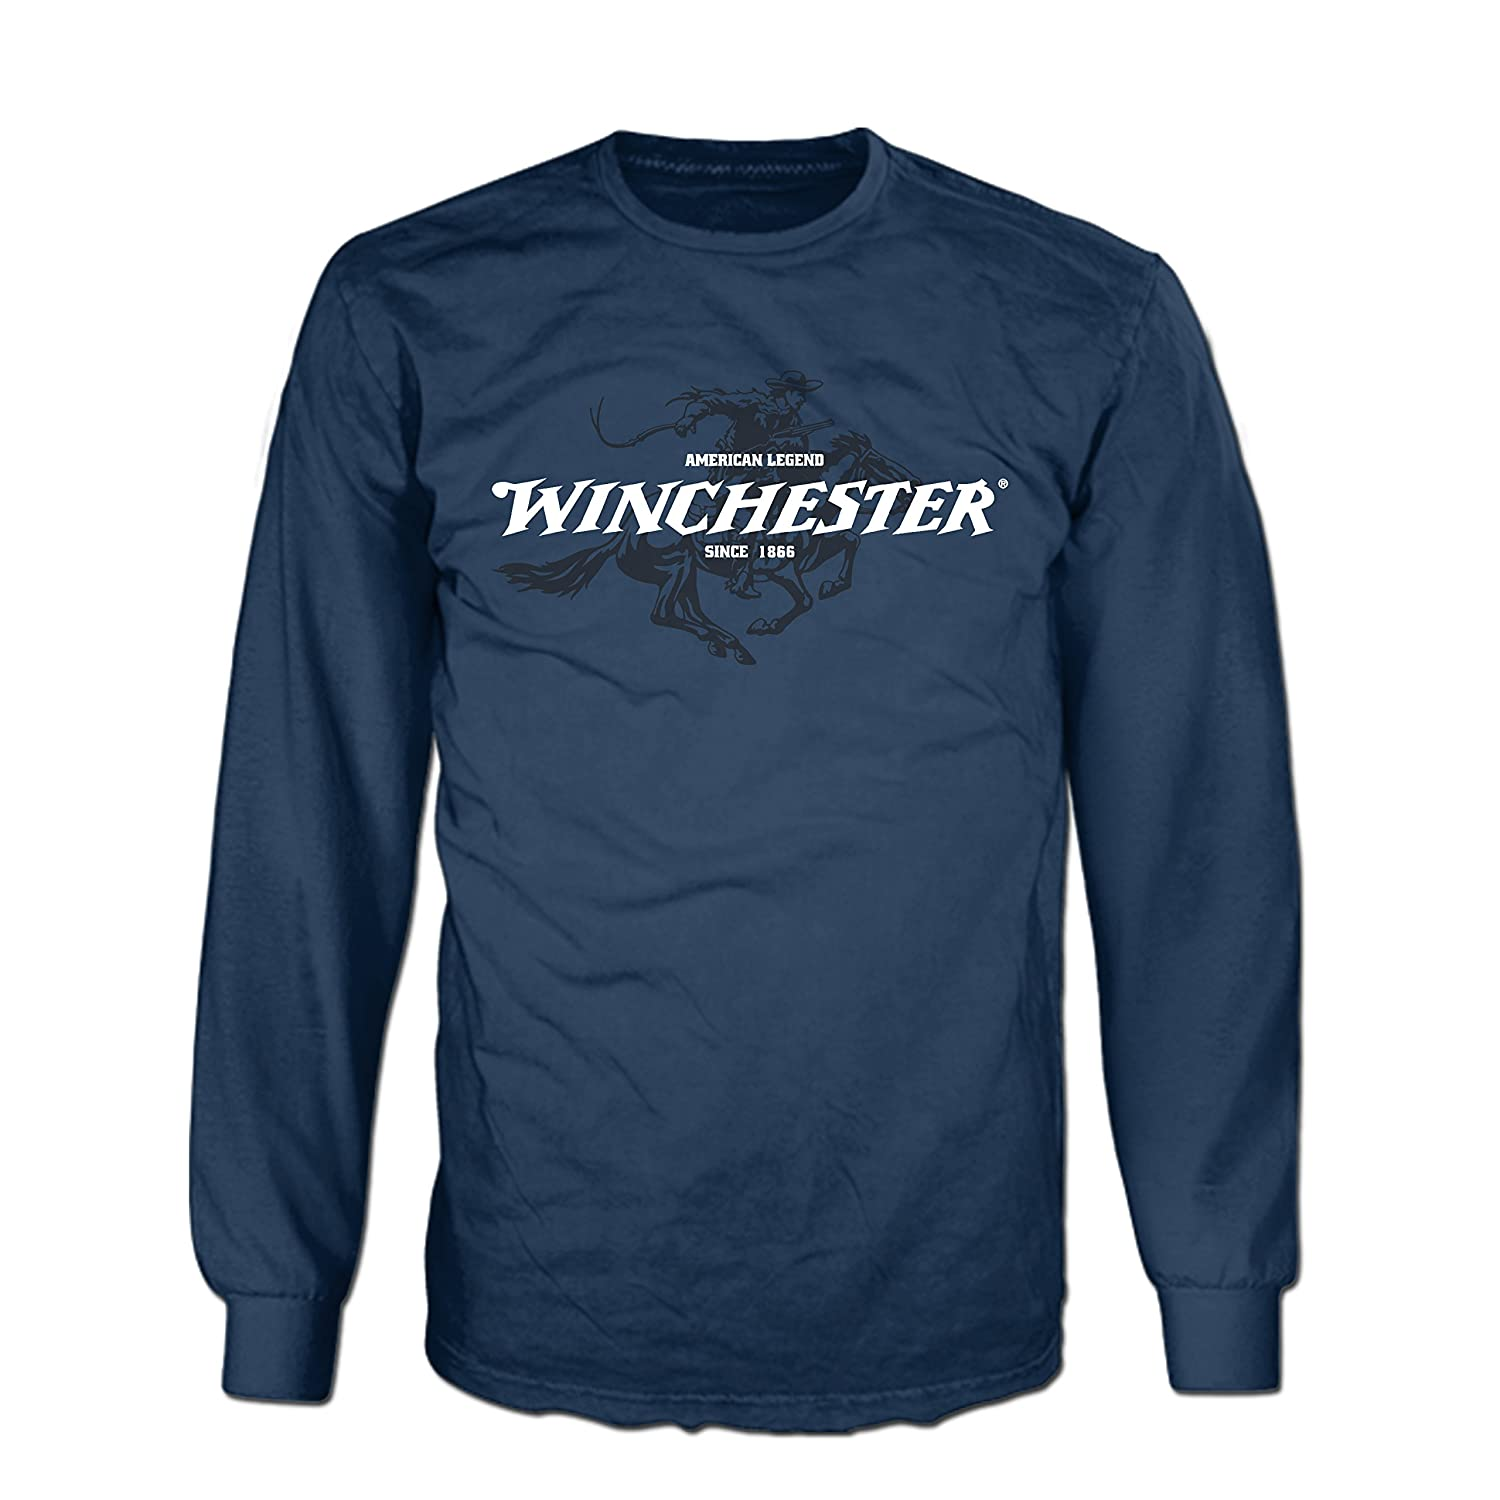 7f77558d ... Celebrate 150 years of Legendary Excellence & own this iconic brand  Winchester screen printed graphic long sleeve tee thats perfect for all day  comfort